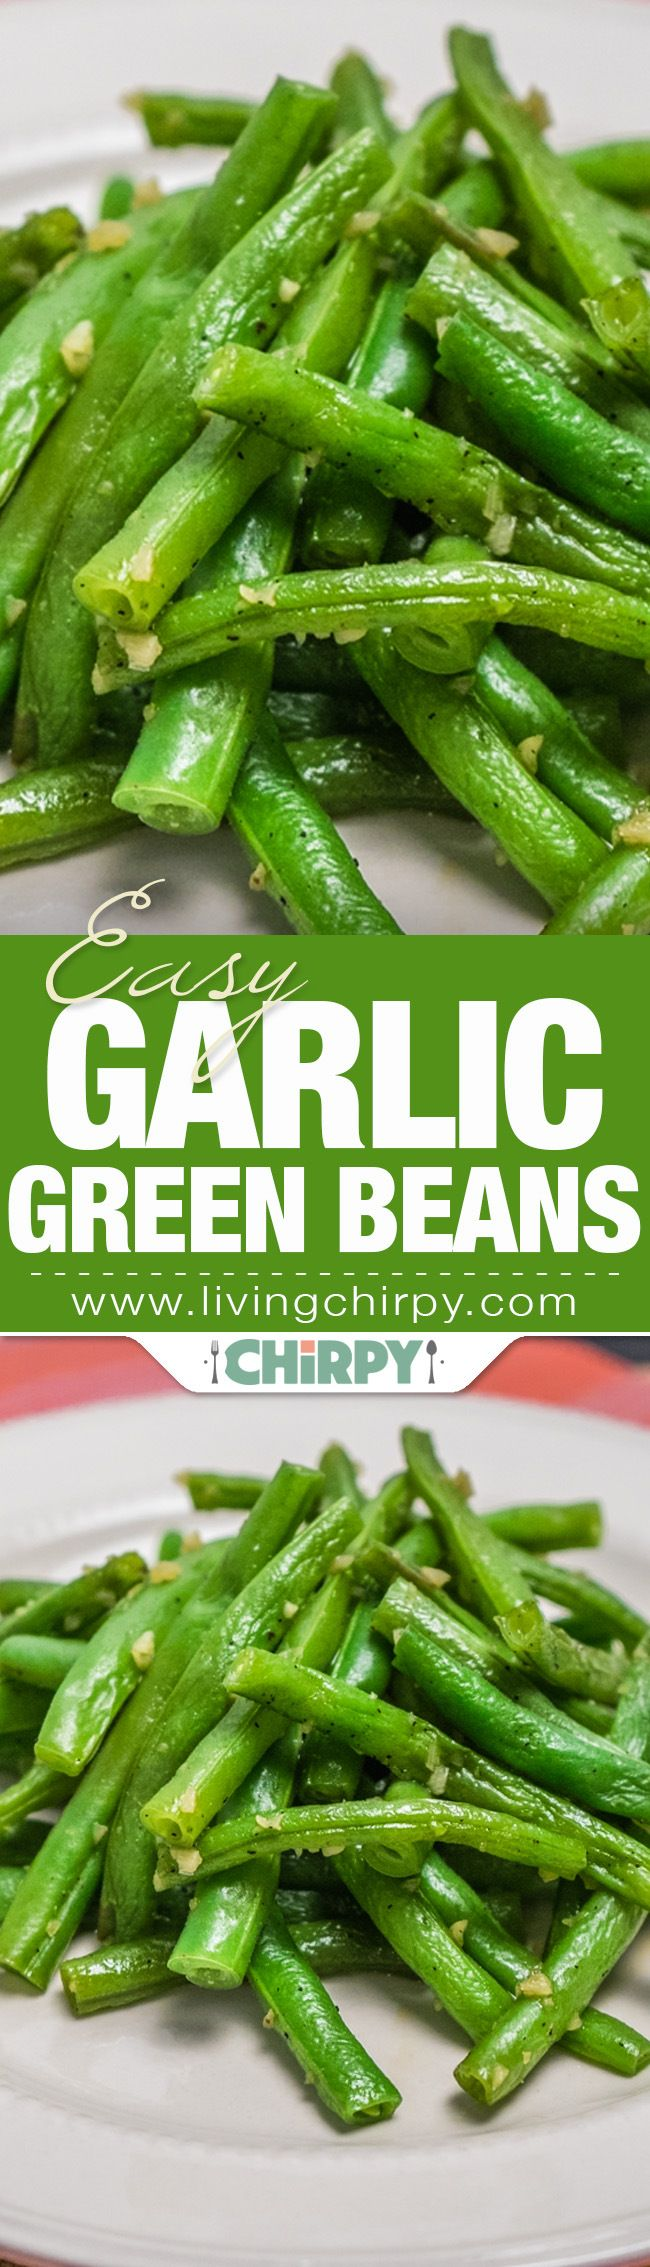 965 best comfort food recipe ideas images on pinterest cooking easy garlic green beans forumfinder Gallery